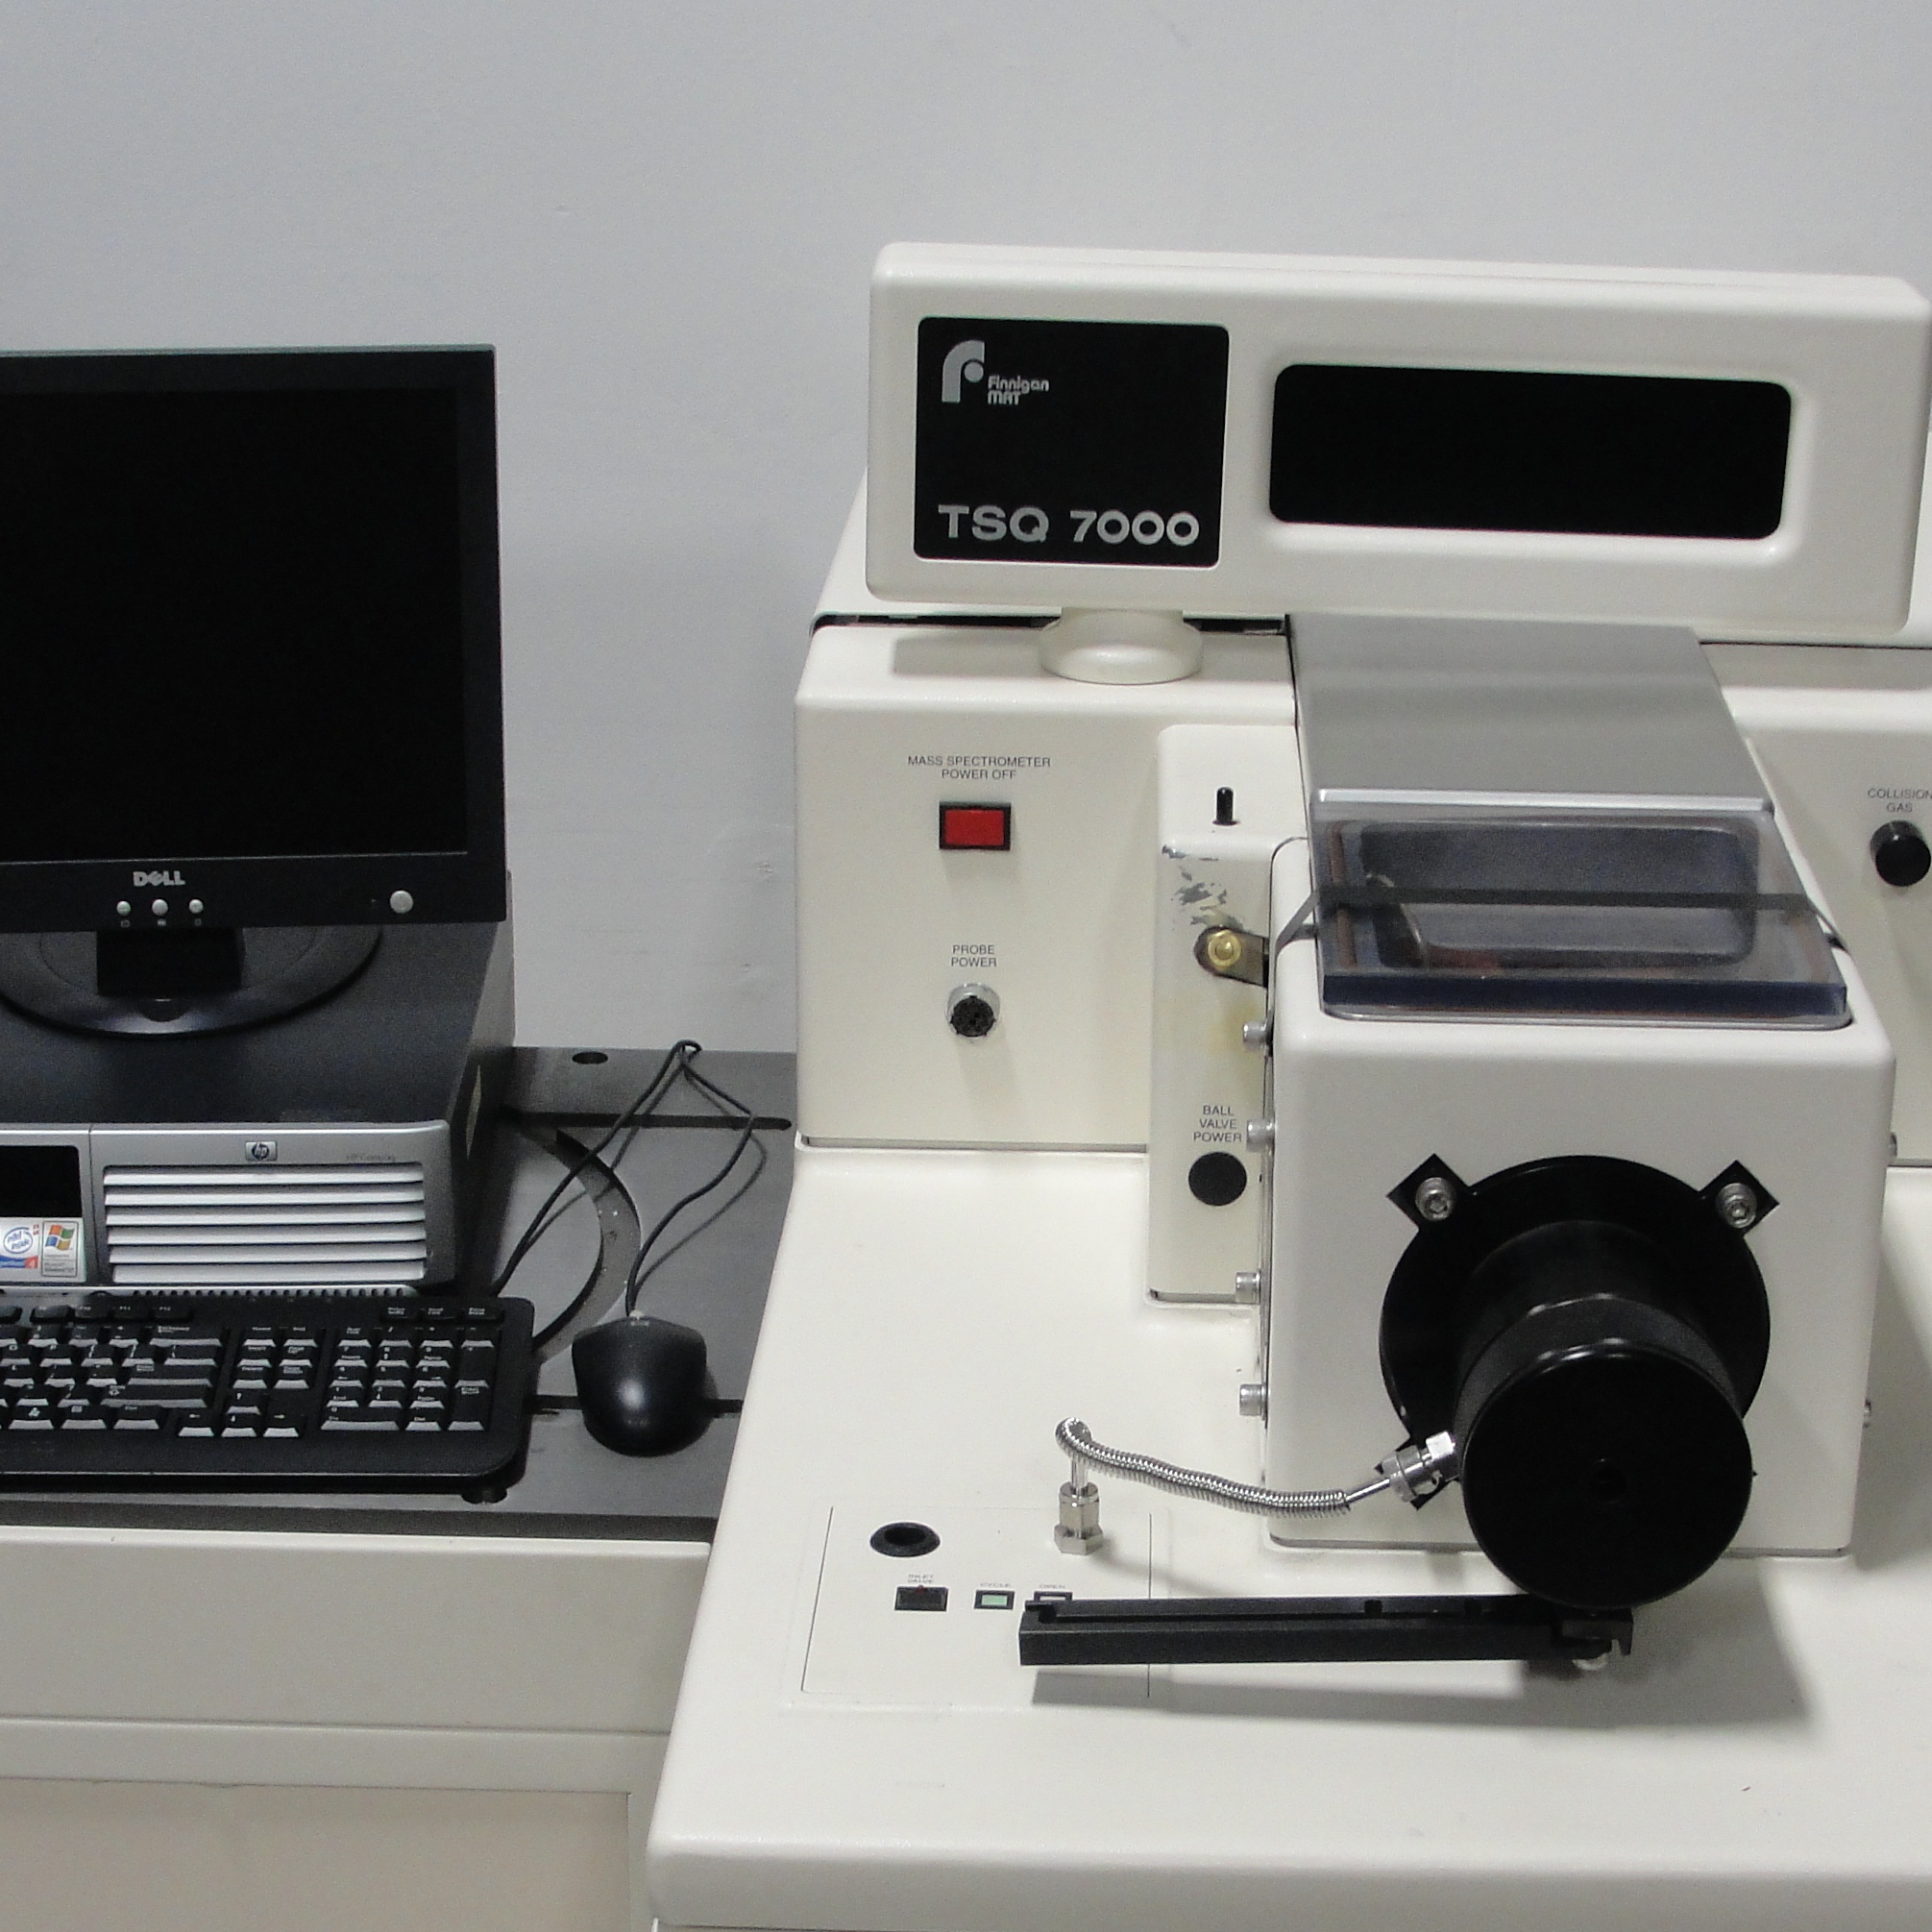 Thermo Finnigan TSQ 7000 LC/MS/MS System Image